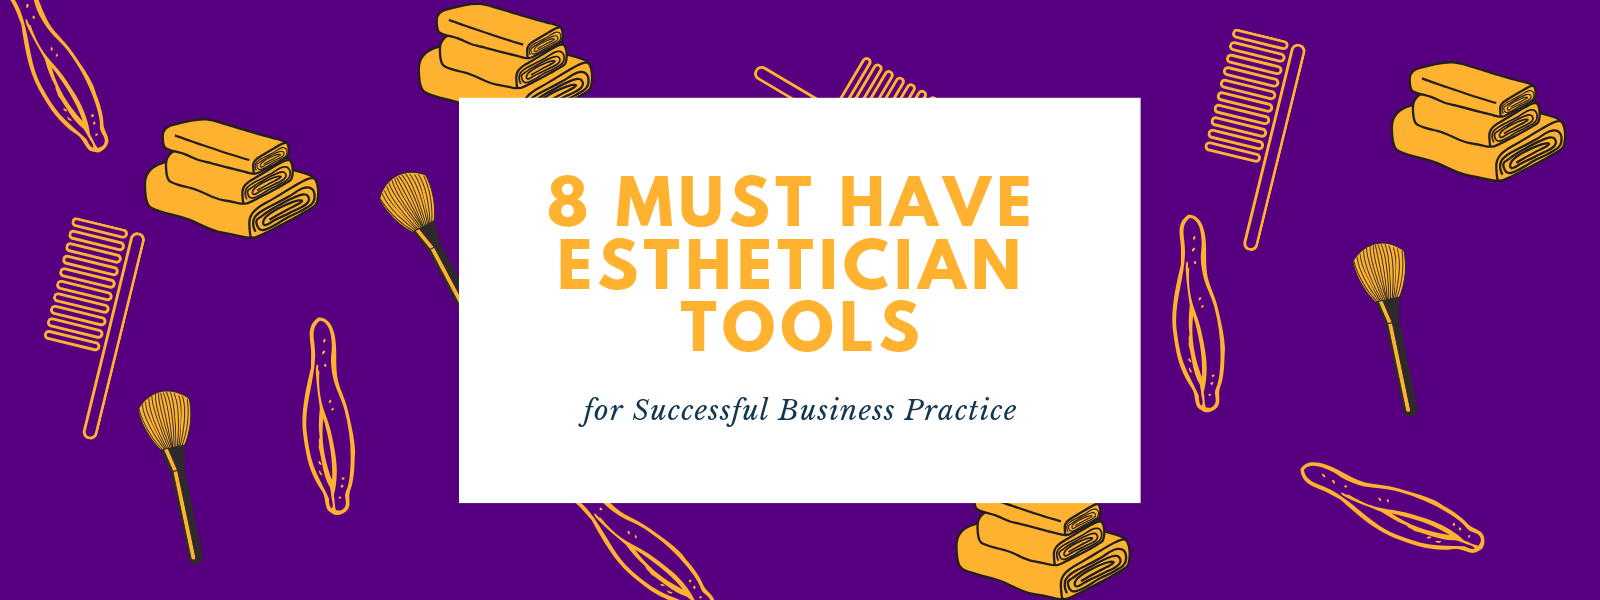 8 Must Have Esthetician Tools for Successful Business Practice